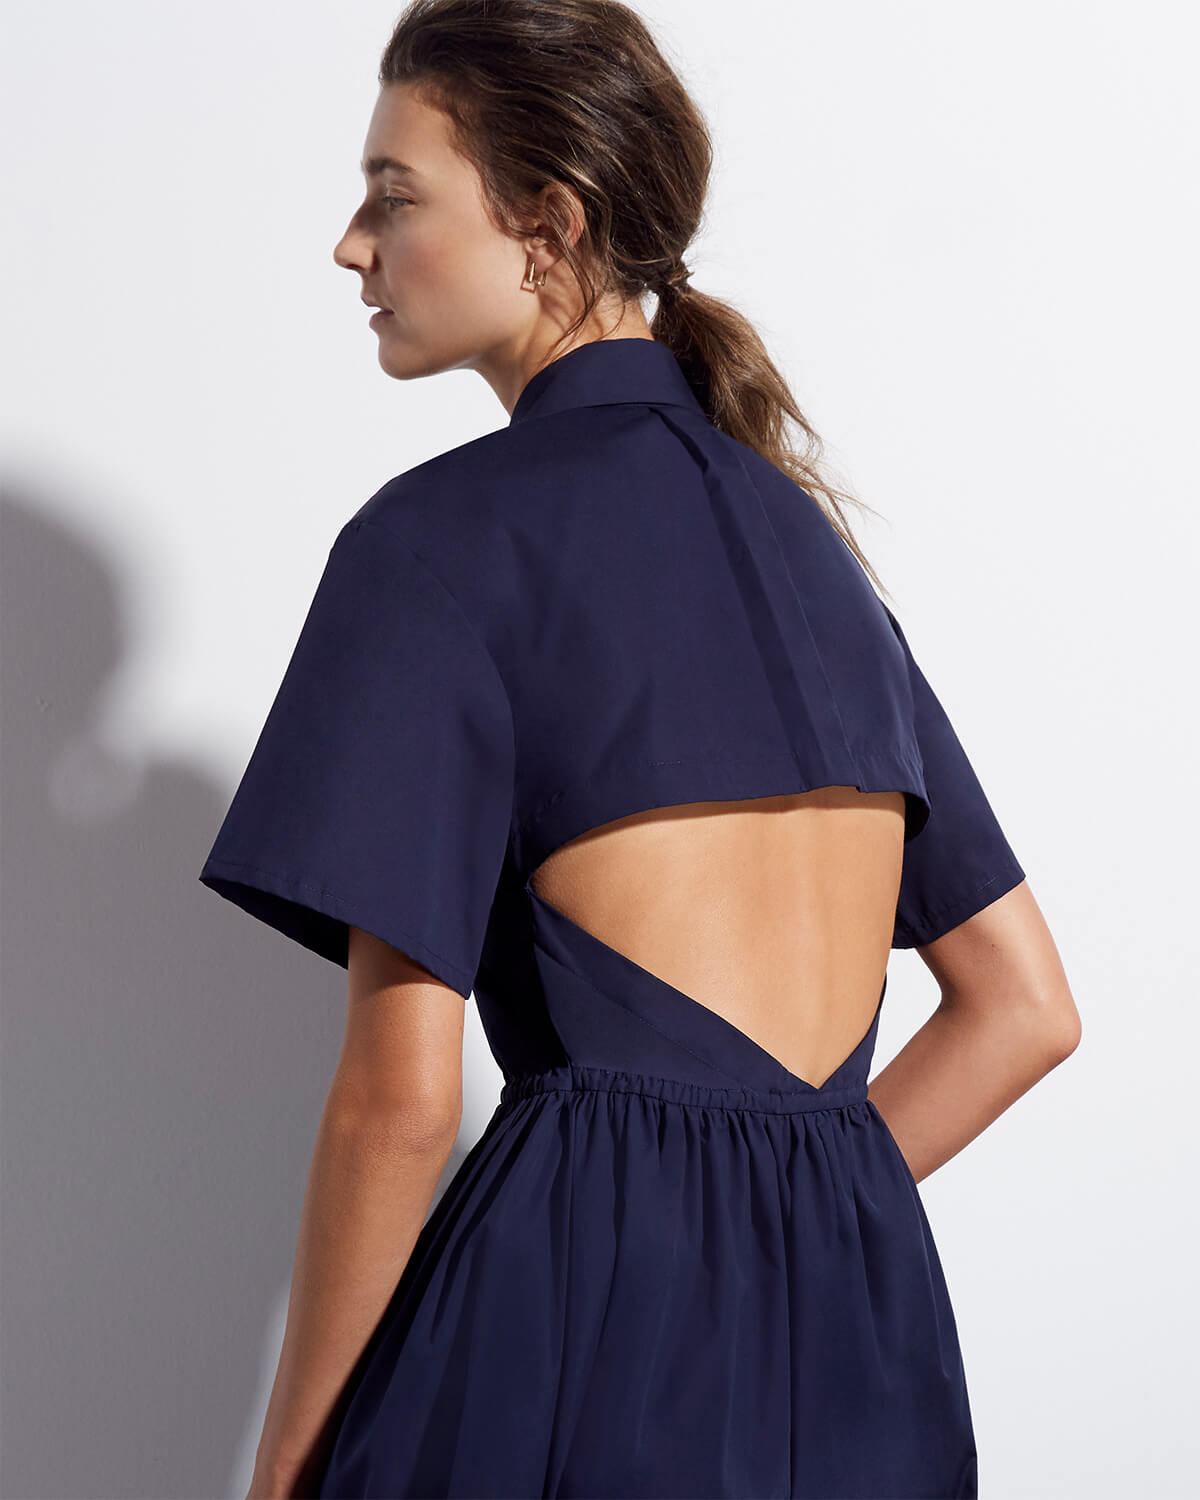 goop x Rosie Assoulin Cutout Shirtdress